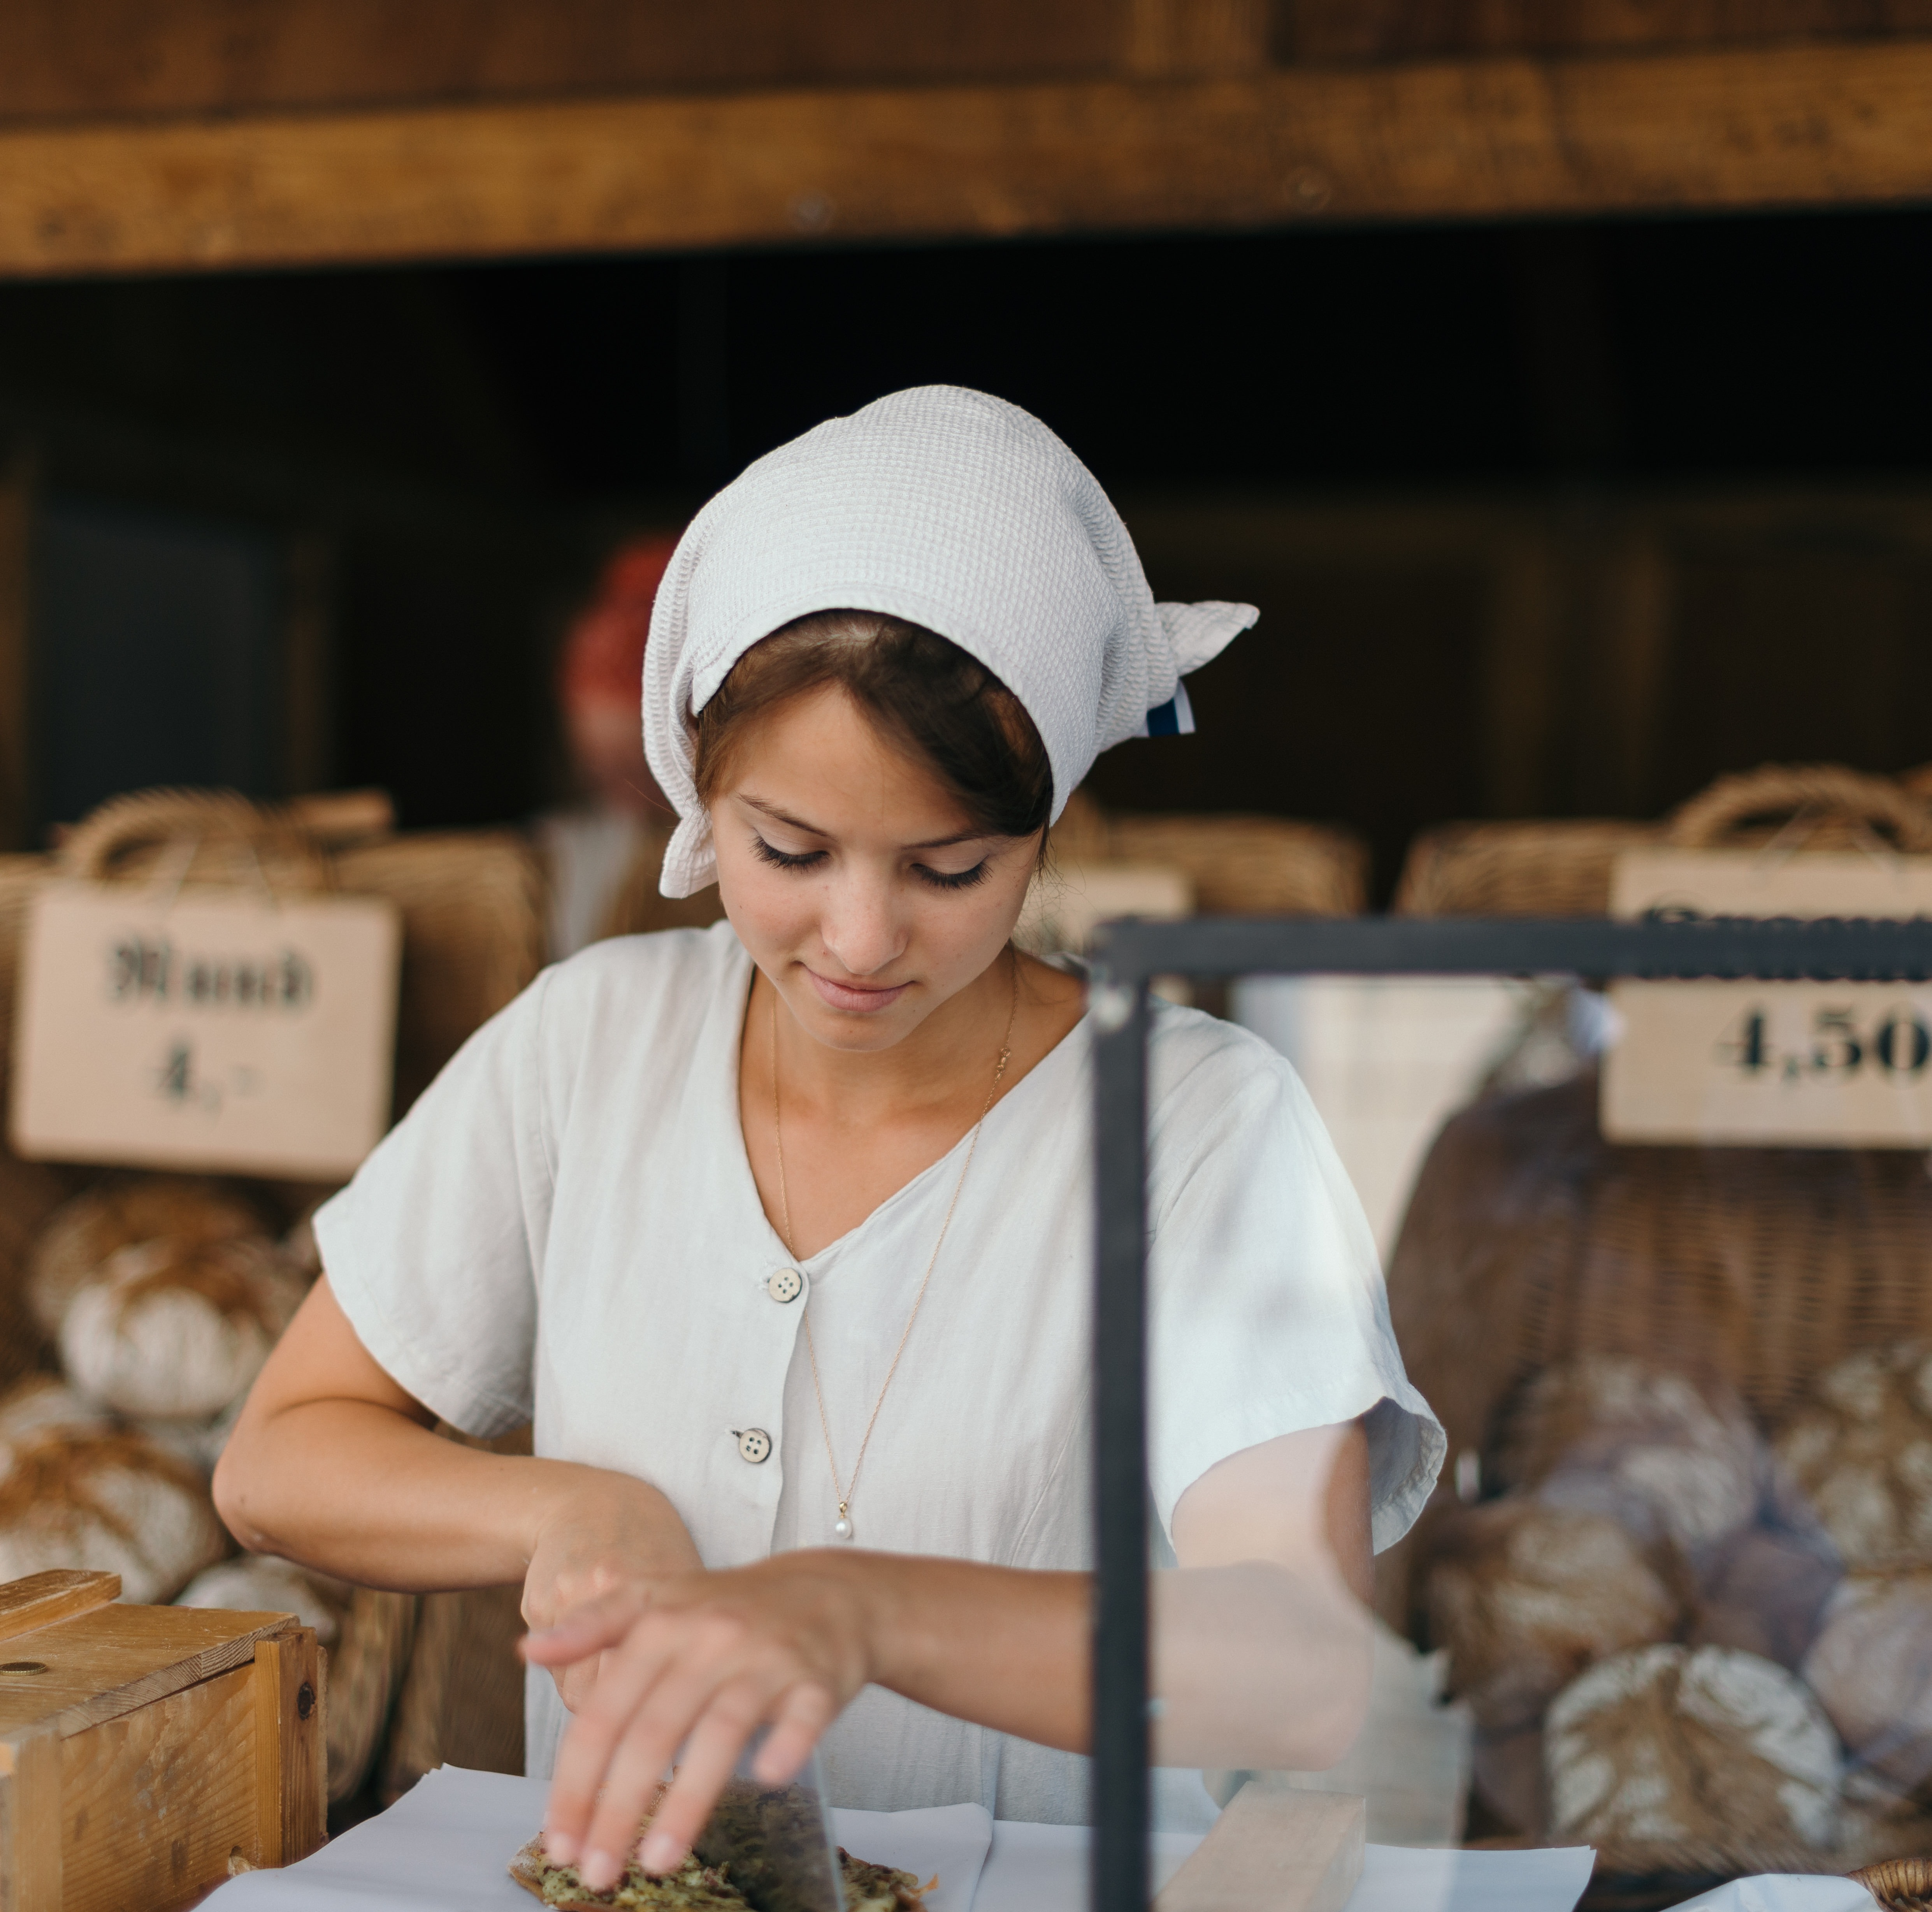 A young woman in a white uniform cutting bread in a bakery